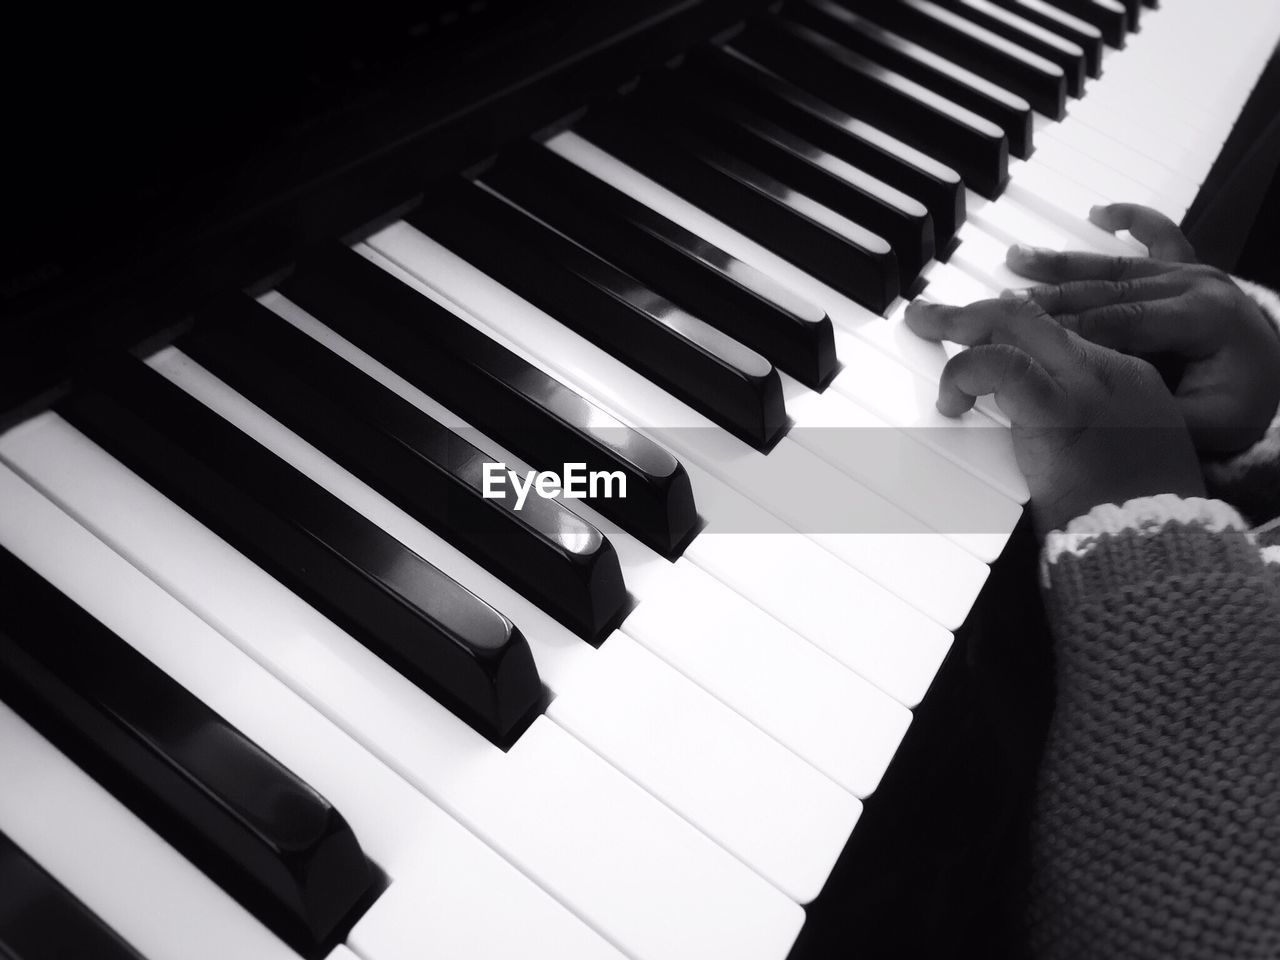 piano, musical instrument, piano key, music, keyboard instrument, playing, arts culture and entertainment, pianist, real people, white color, musician, one person, human hand, indoors, close-up, leisure activity, human body part, lifestyles, synthesizer, skill, performance, musical note, keyboard, classical music, day, people